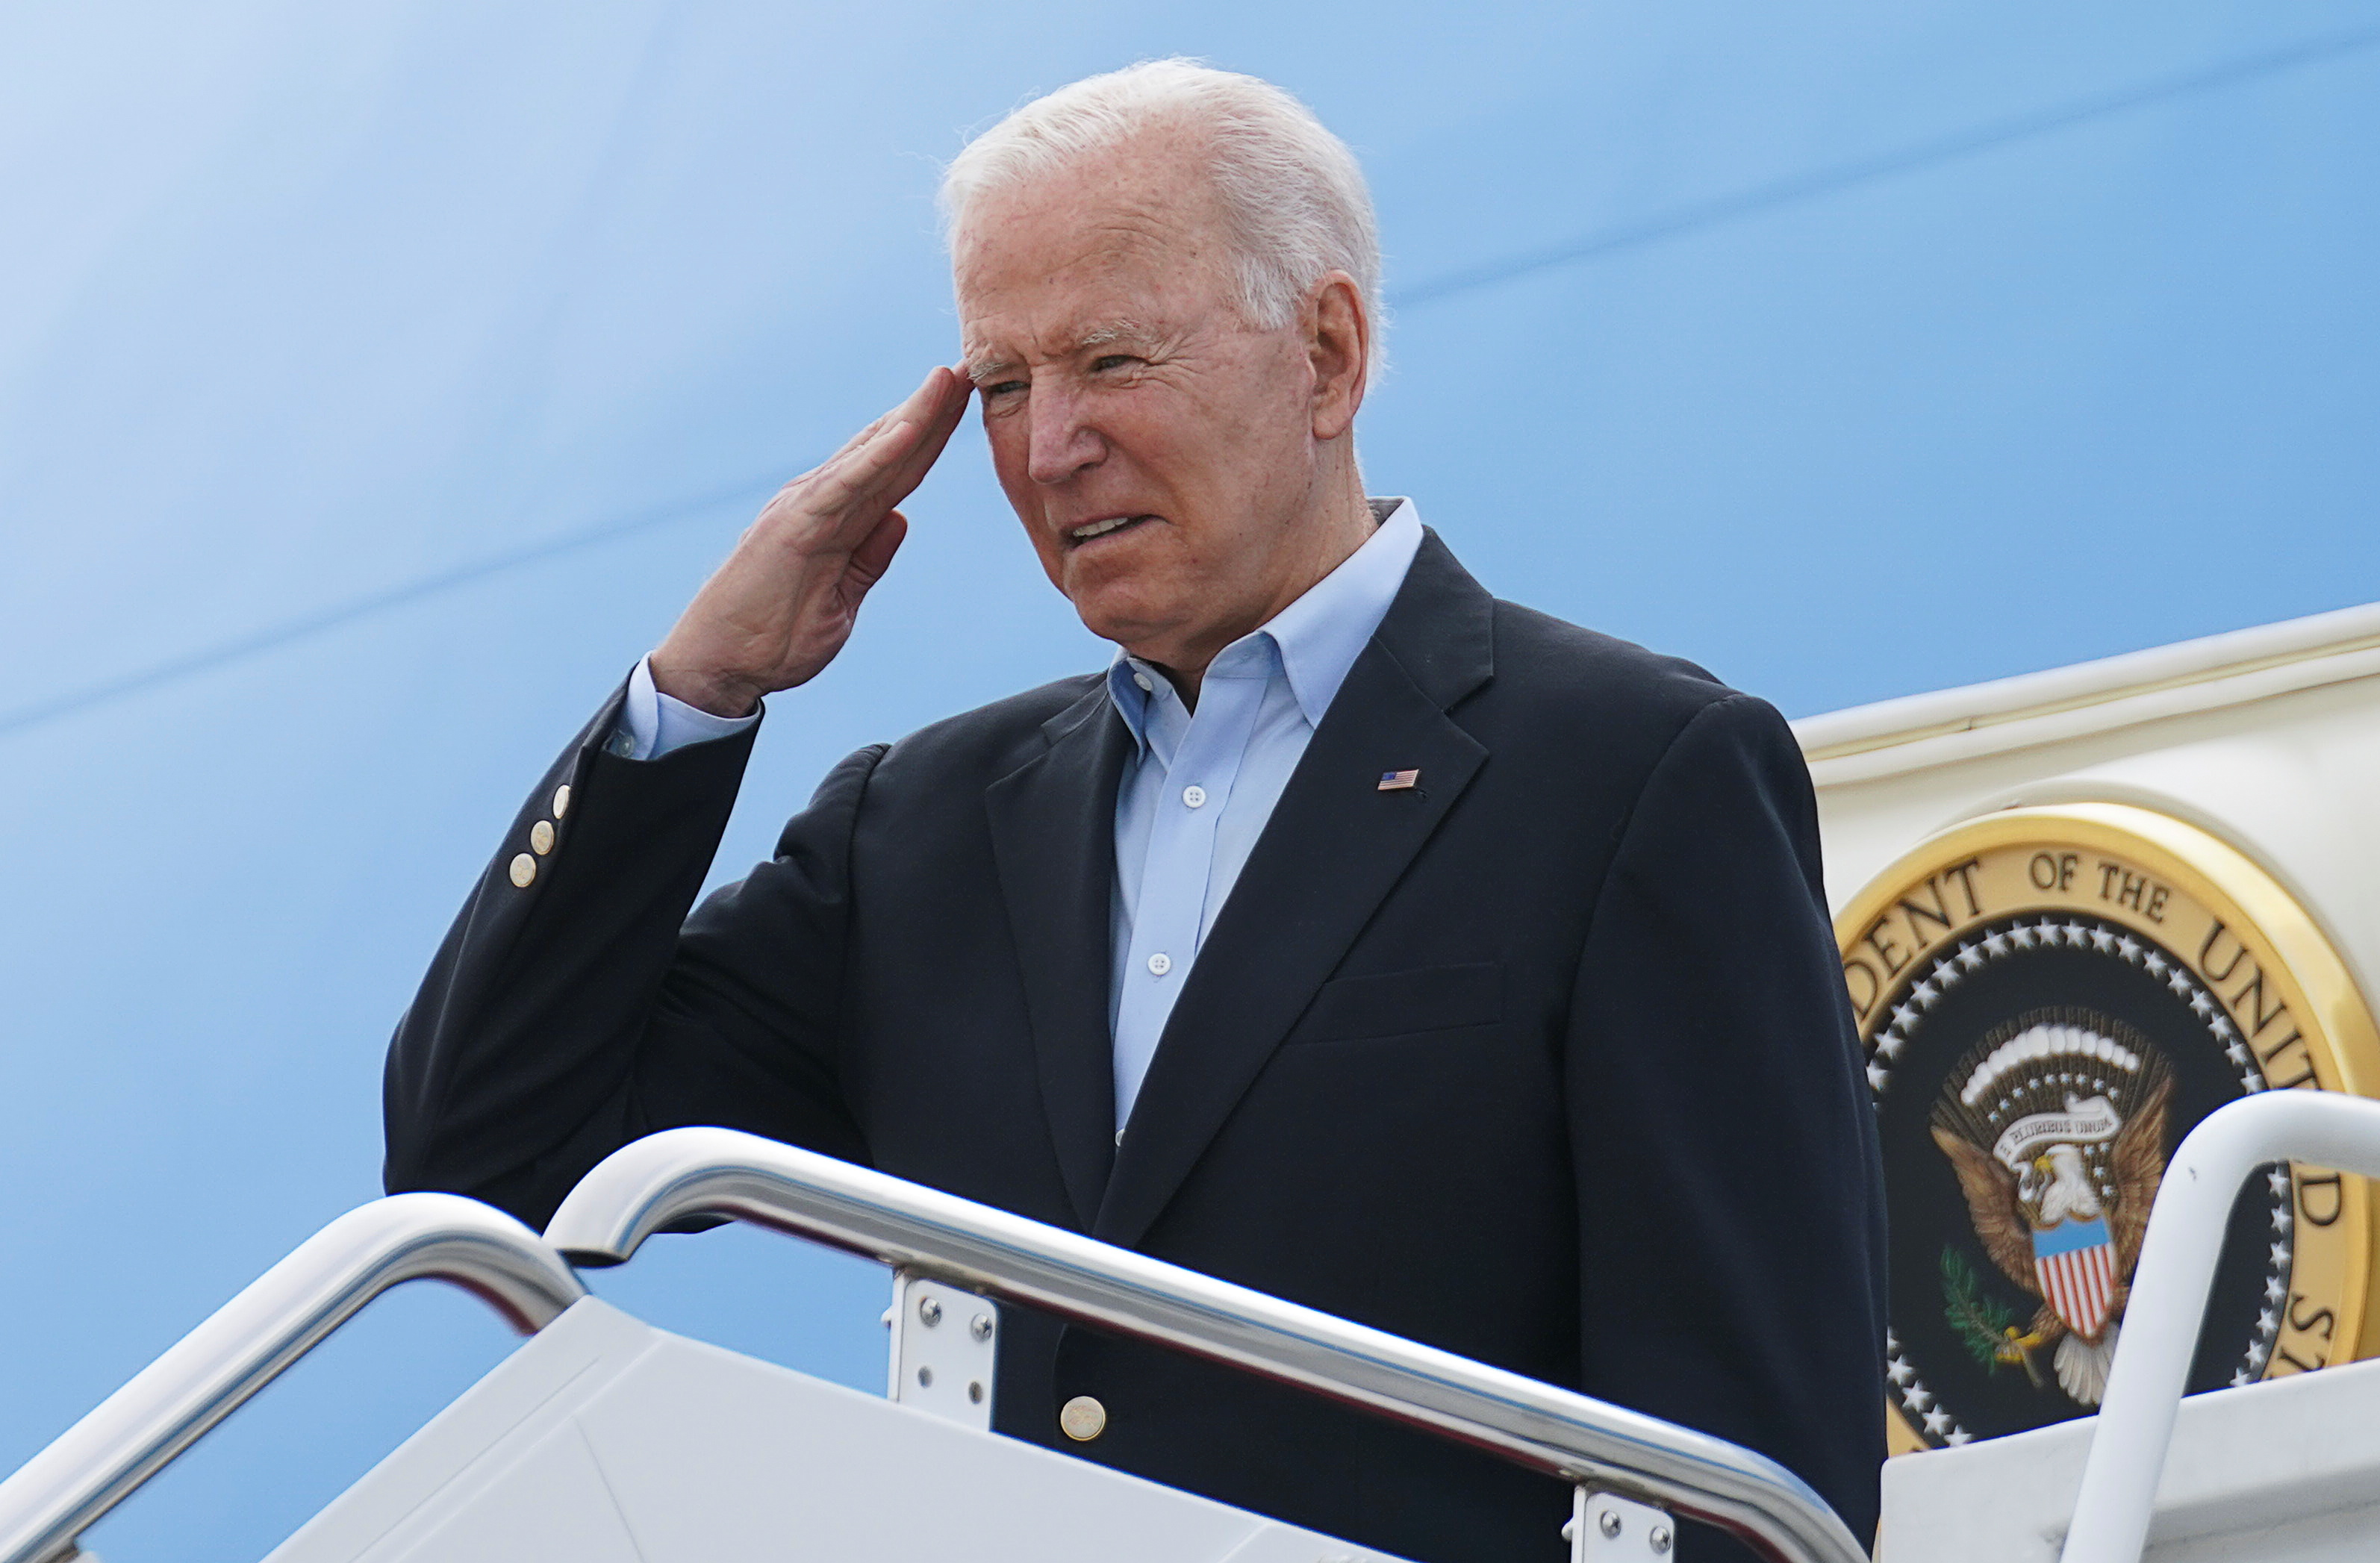 U.S. President Joe Biden salutes while boarding Air Force One as he departs on travel to attend the G-7 Summit in England, the first foreign trip of his presidency, from Joint Base Andrews, Maryland, U.S., June 9, 2021. REUTERS/Kevin Lamarque